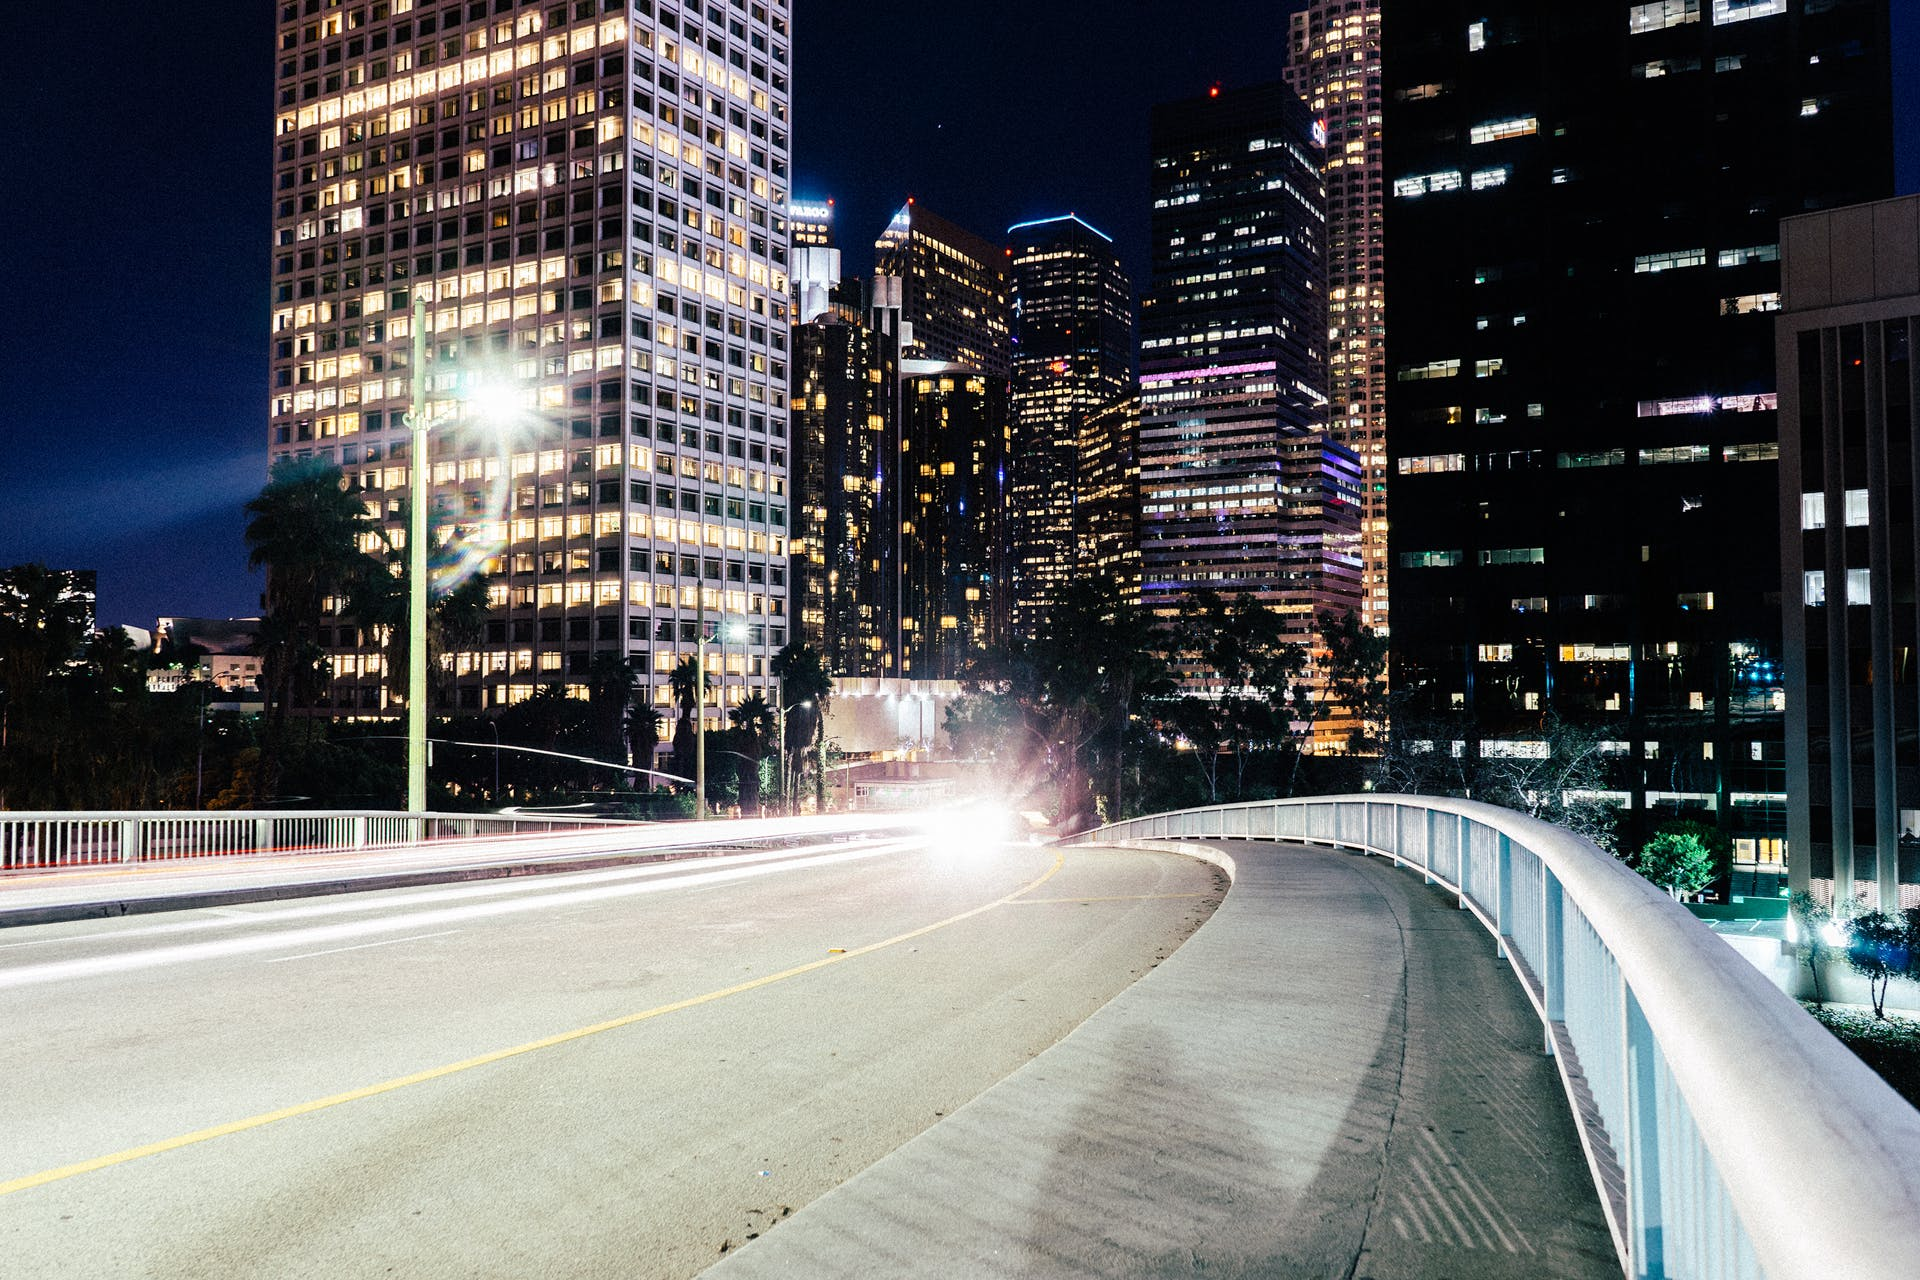 Time-lapse Photography of Bridge Near Buildings at Night